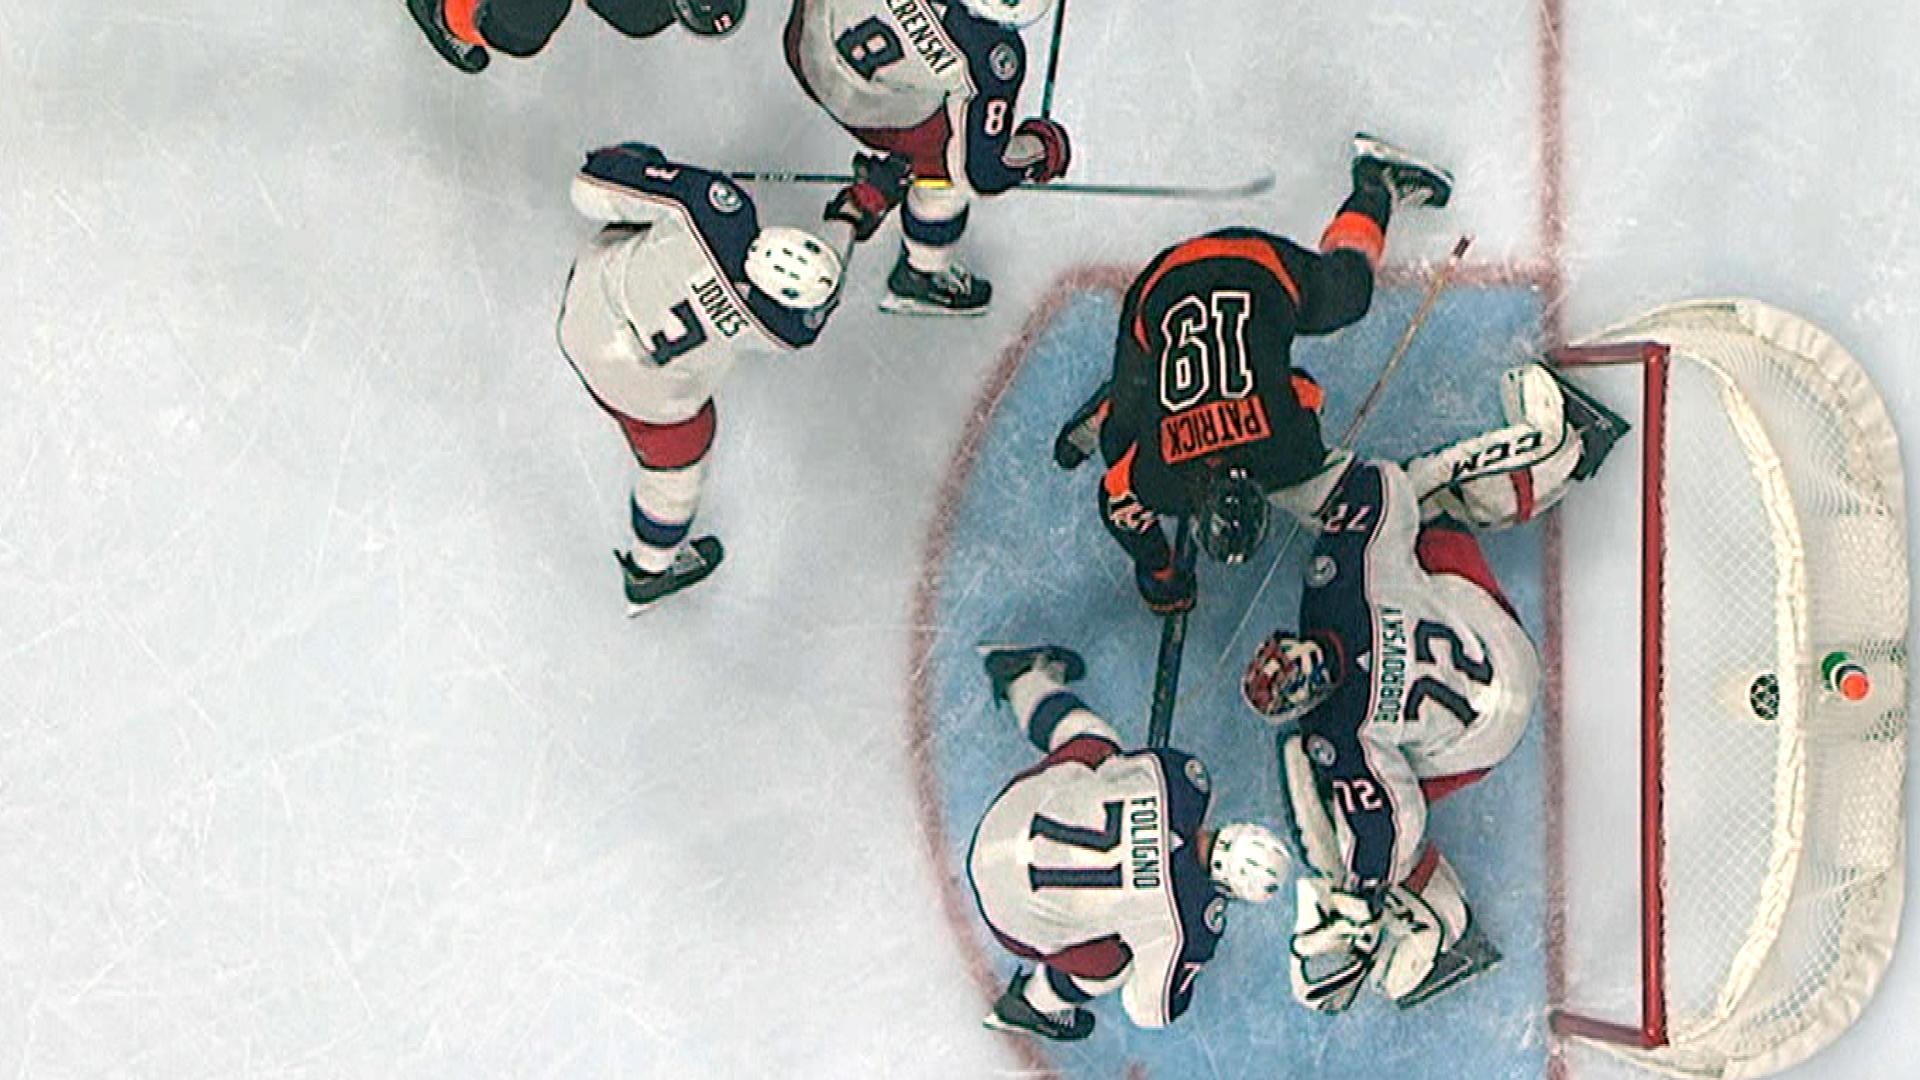 966744355b7b5 Sergei Bobrovsky sitting for Blue Jackets after unspecified 'incident'    NBC Sports